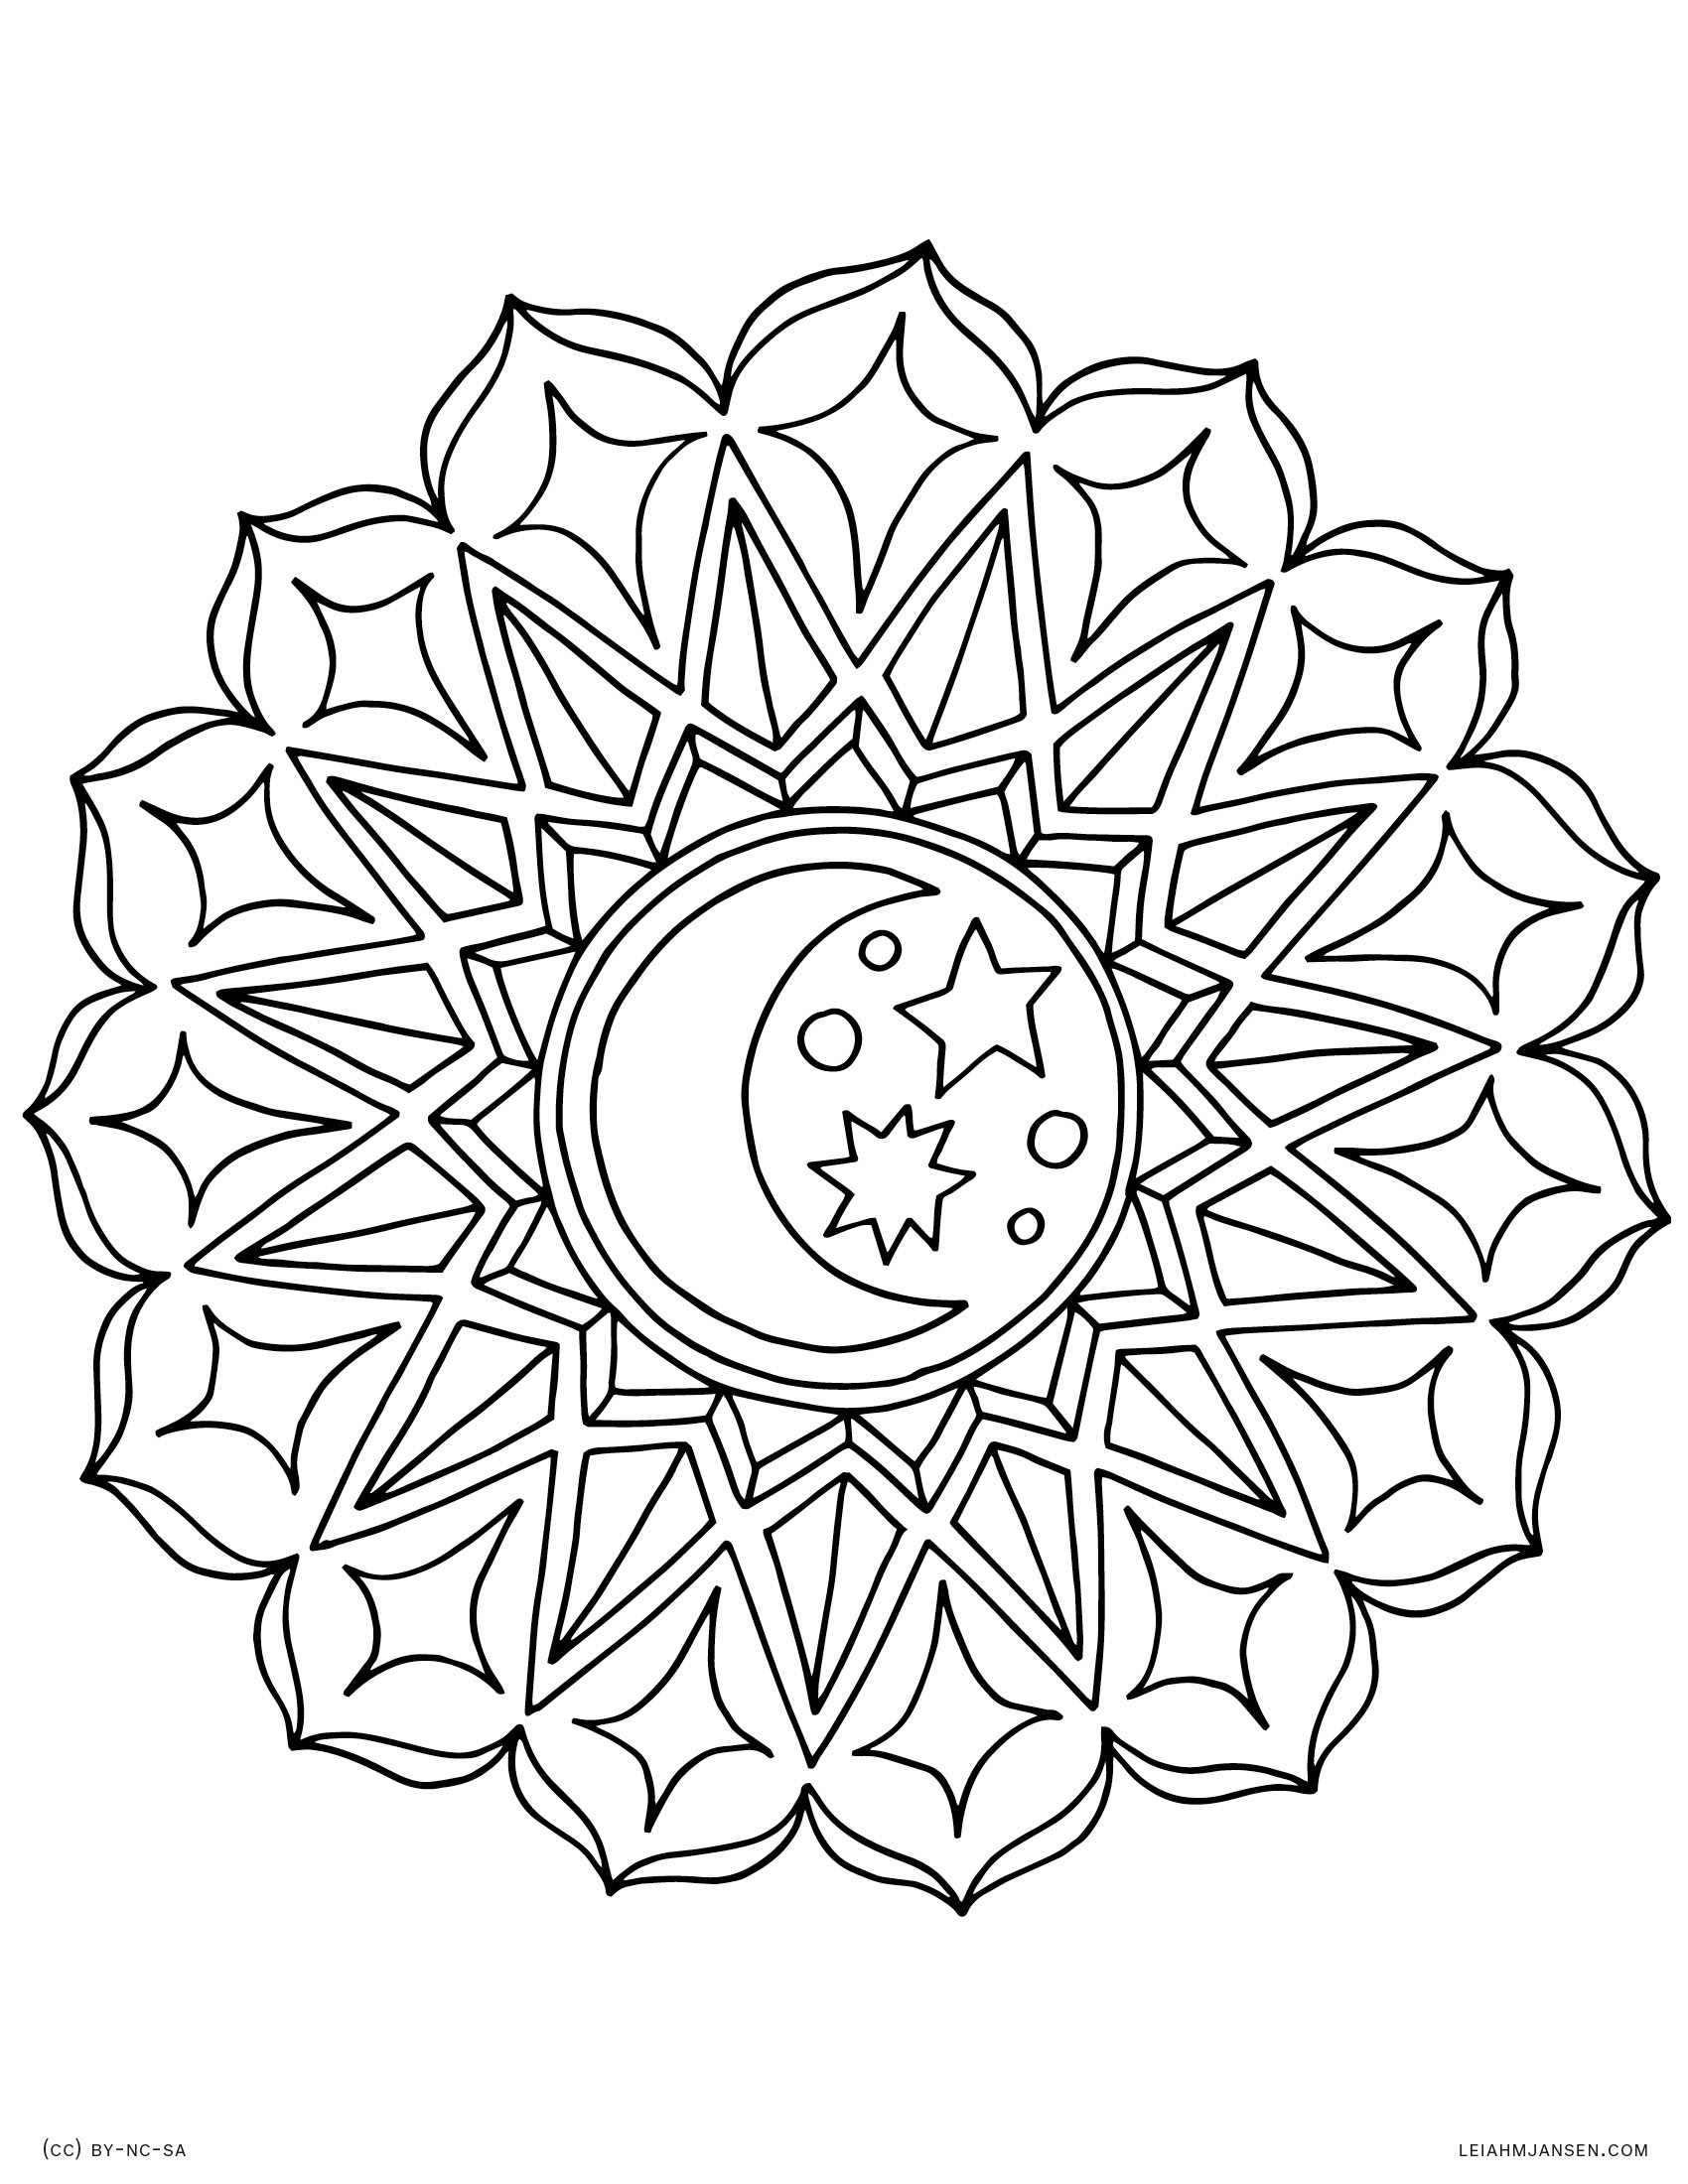 coloring pages with stars 60 star coloring pages customize and print ad free pdf with stars pages coloring